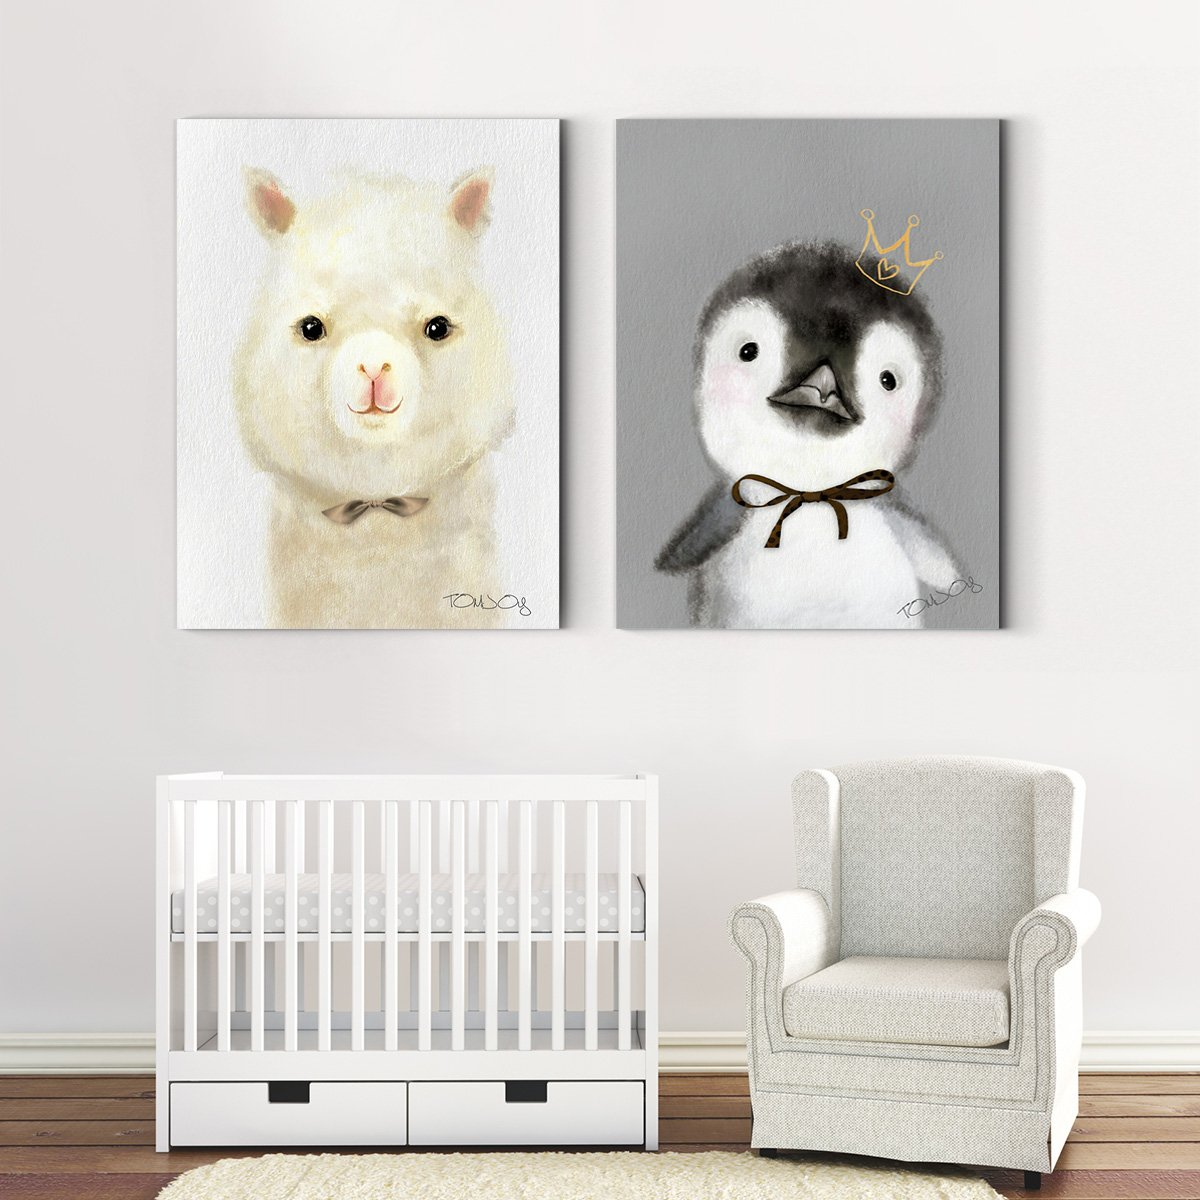 Cute cartoon pets - animal decorative painting - living room double A